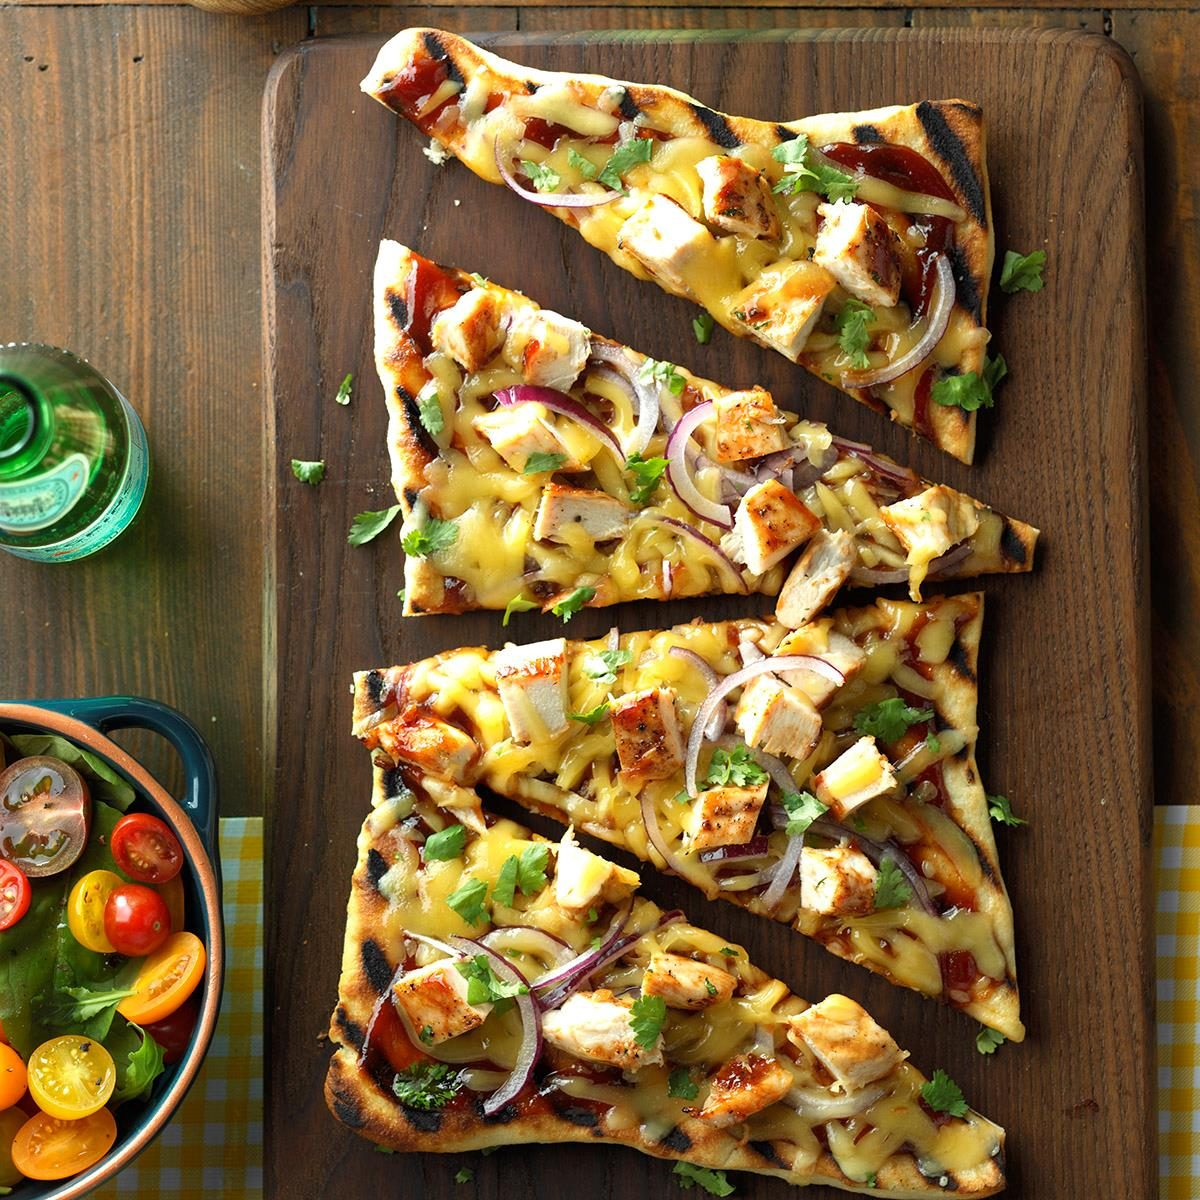 Inspired by: California Pizza Kitchen The Original BBQ Chicken Pizza